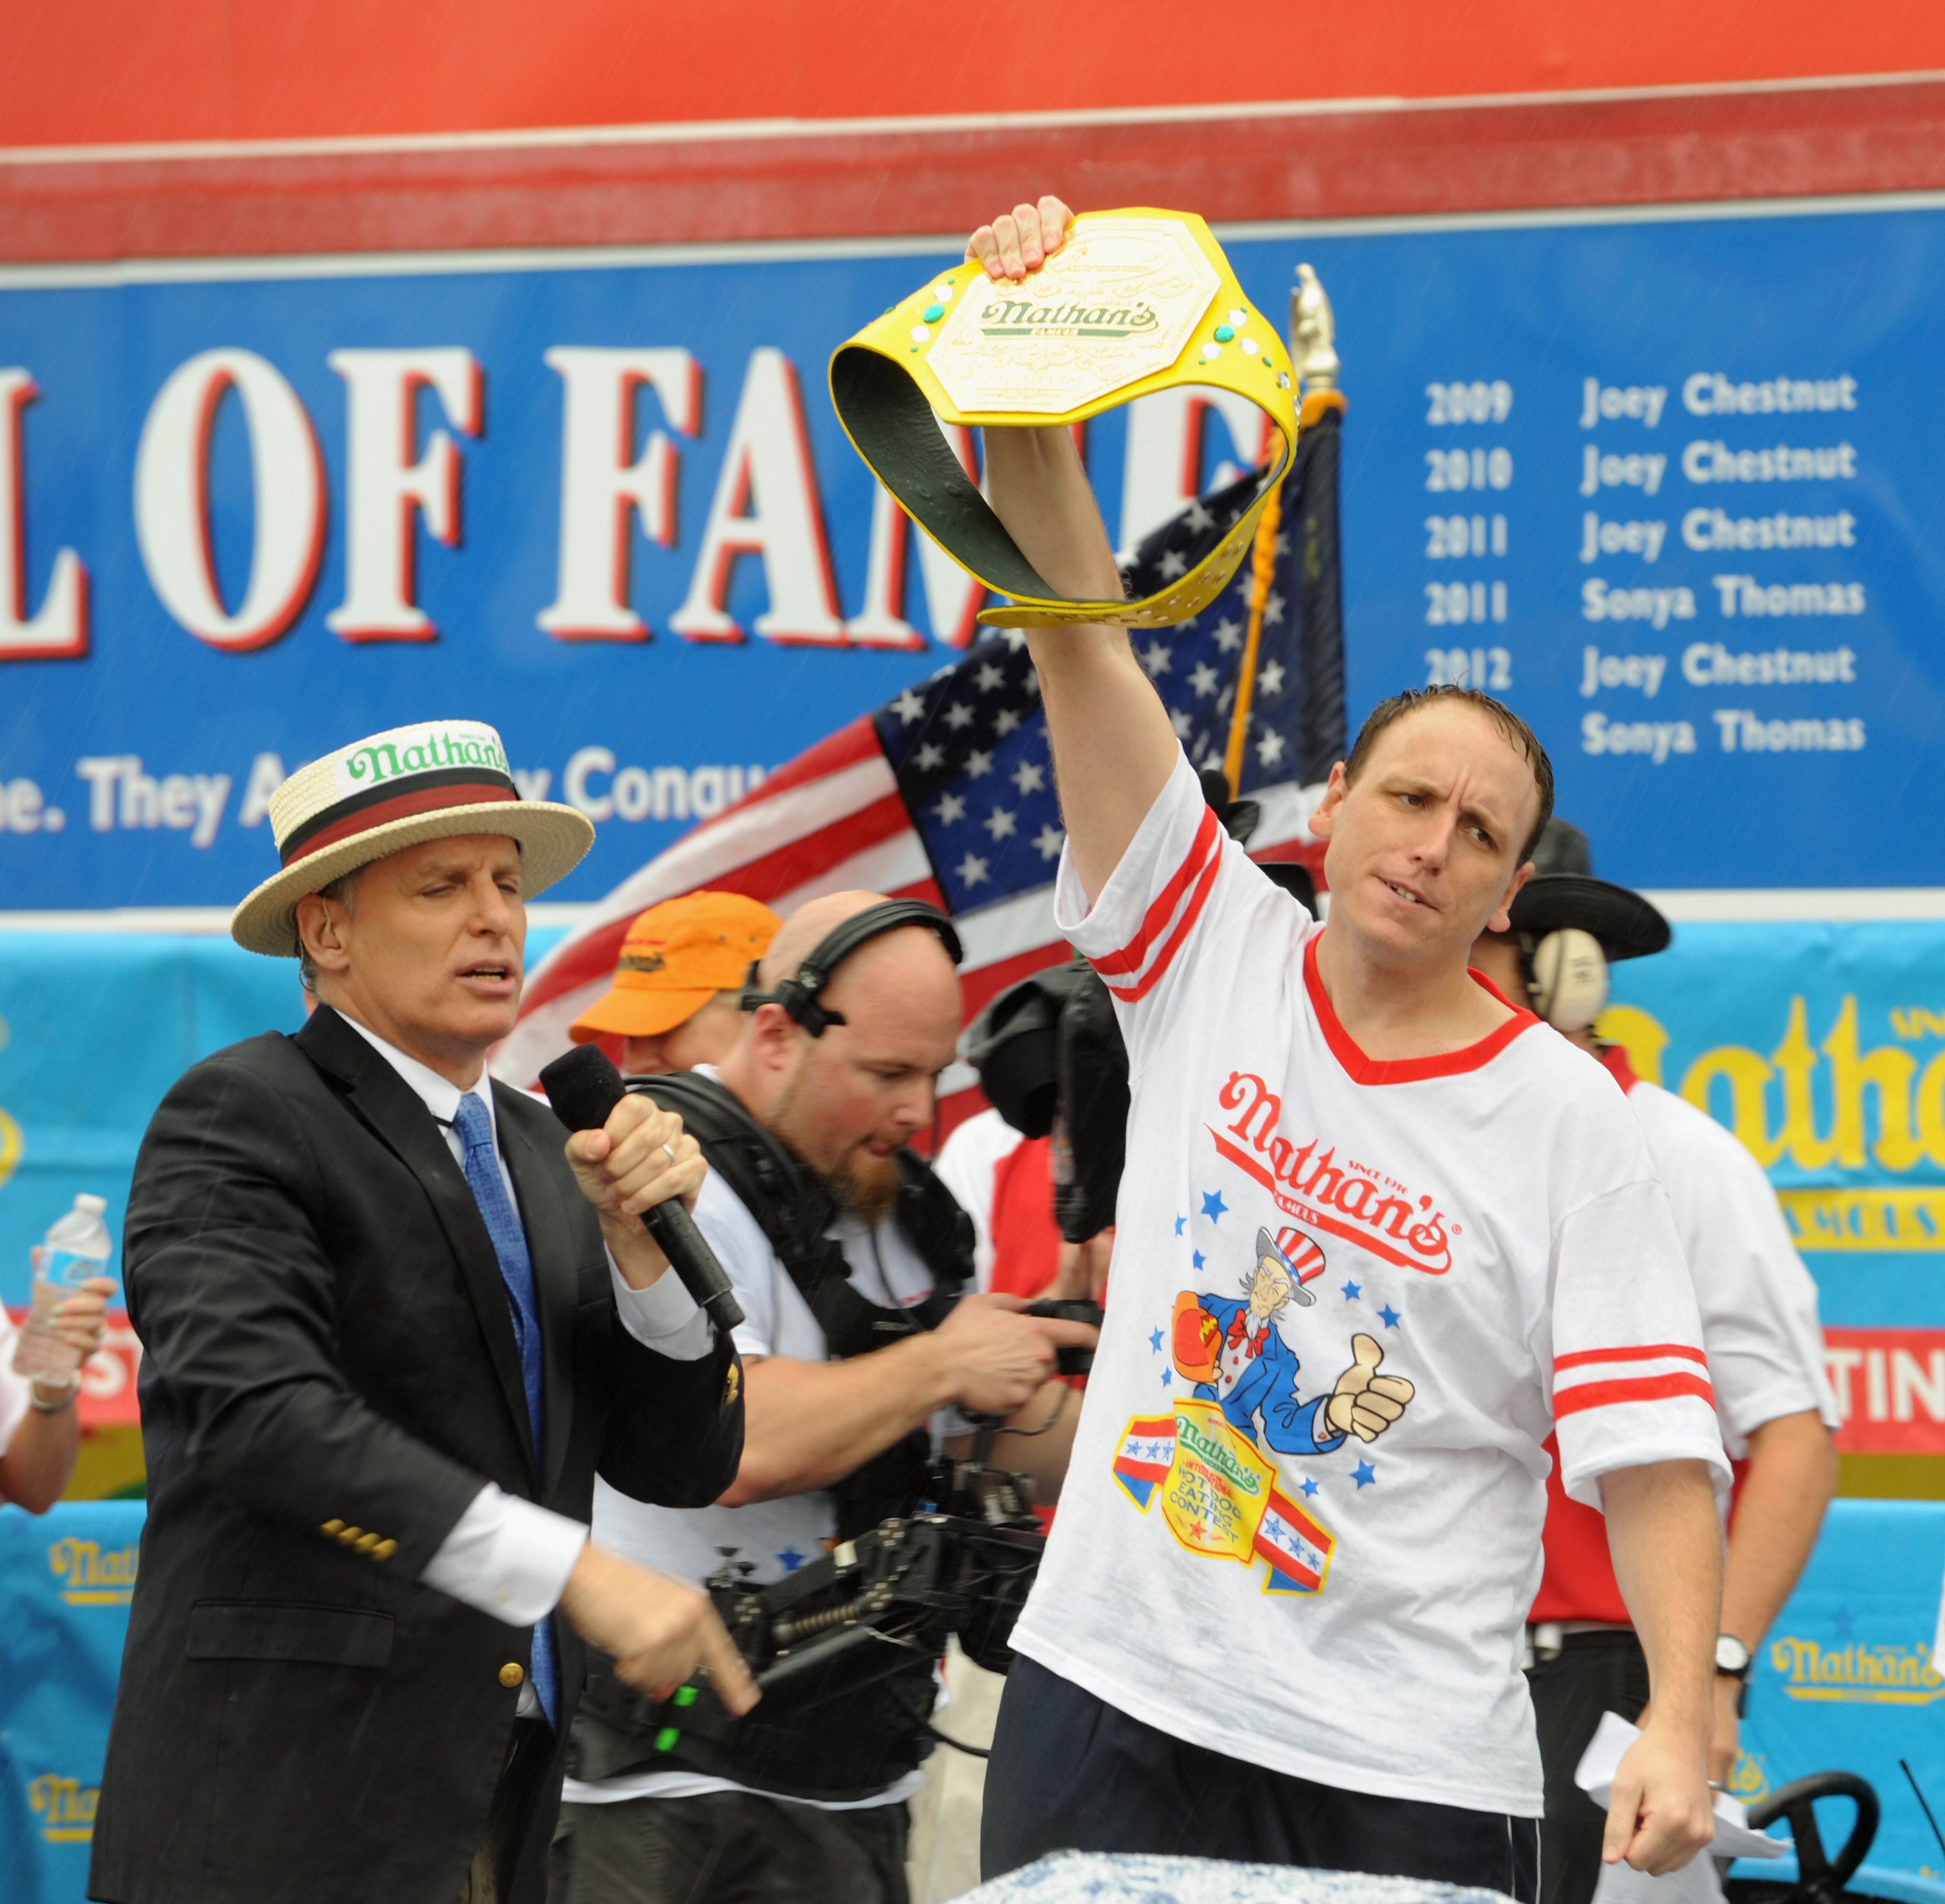 Joey Chestnut wins the Men's Division with 61 Hot Dogs at the 2014 Nathan's Famous 4th July International Hot Dog Eating Contest at Coney Island on July 4, 2014 in the Brooklyn borough of New York City.